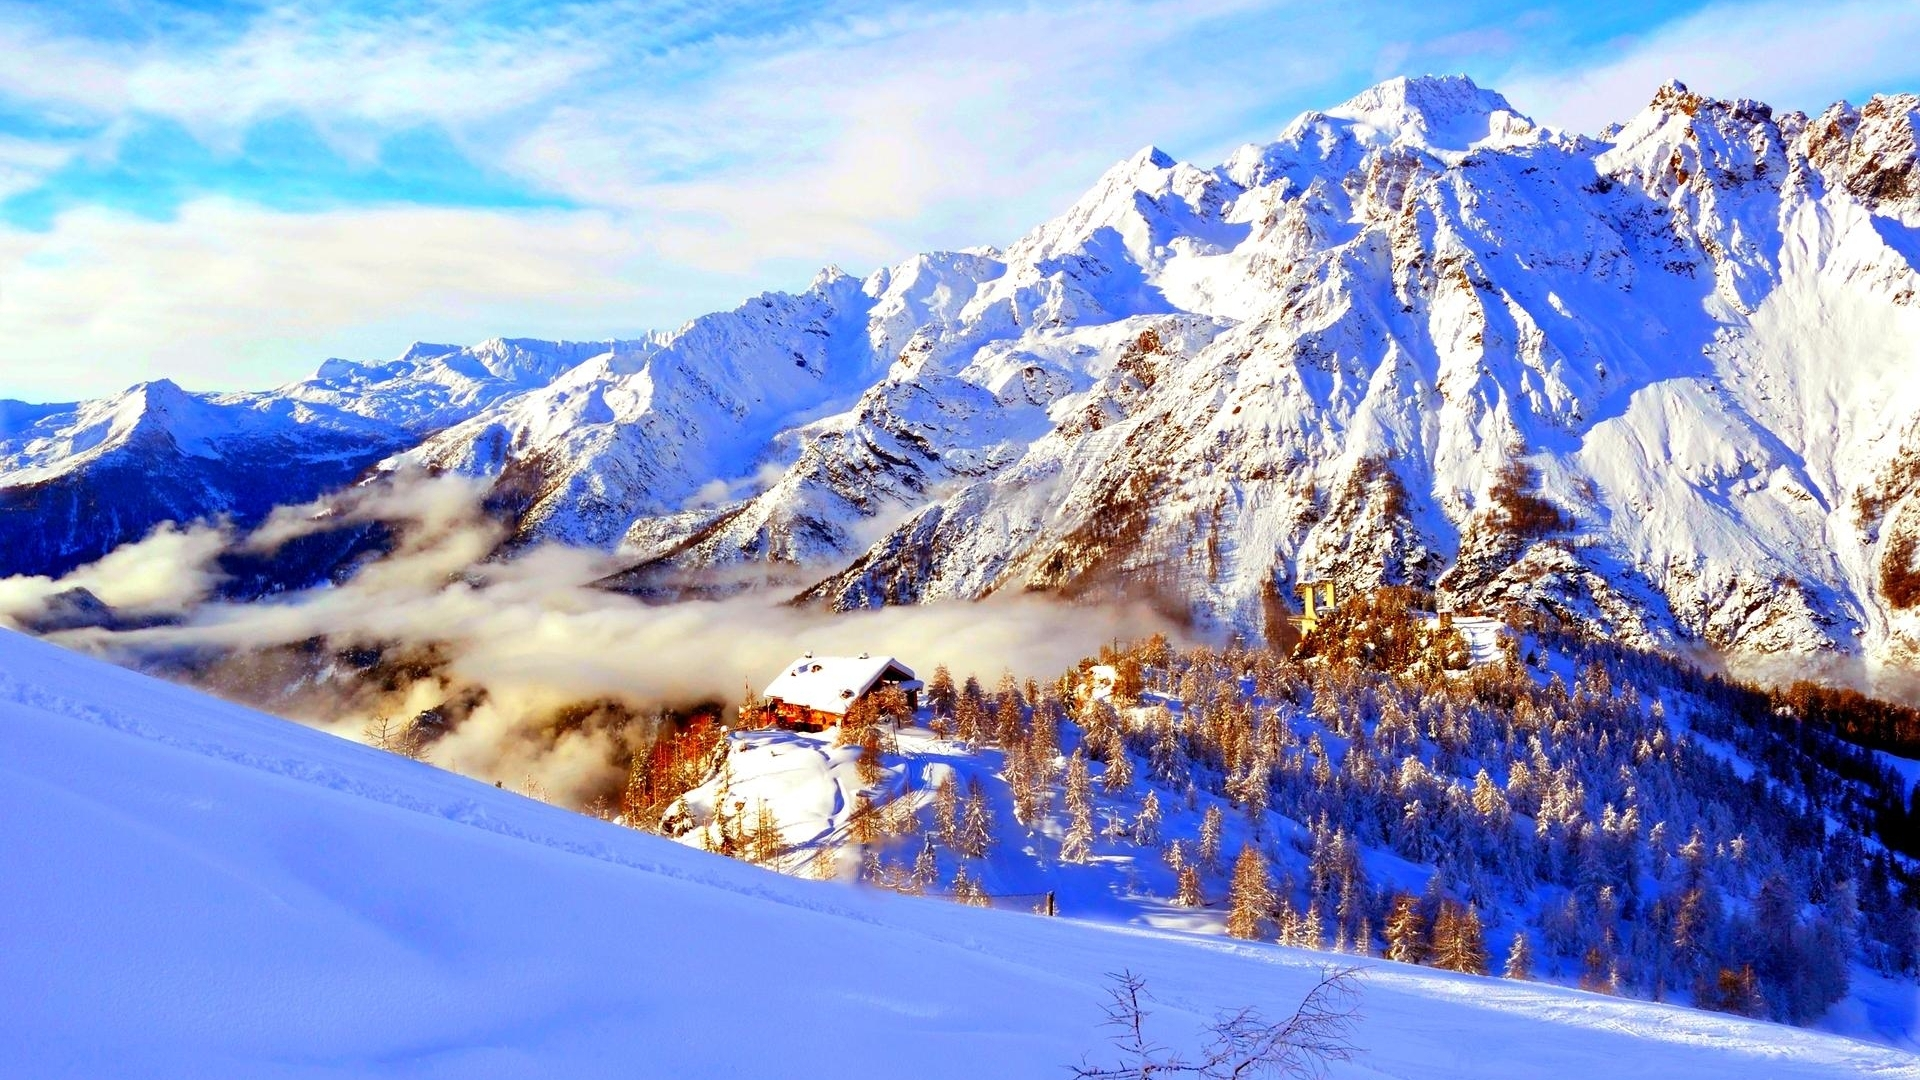 Lonely house at snow mountain valley wallpaper in Nature wallpapers 558